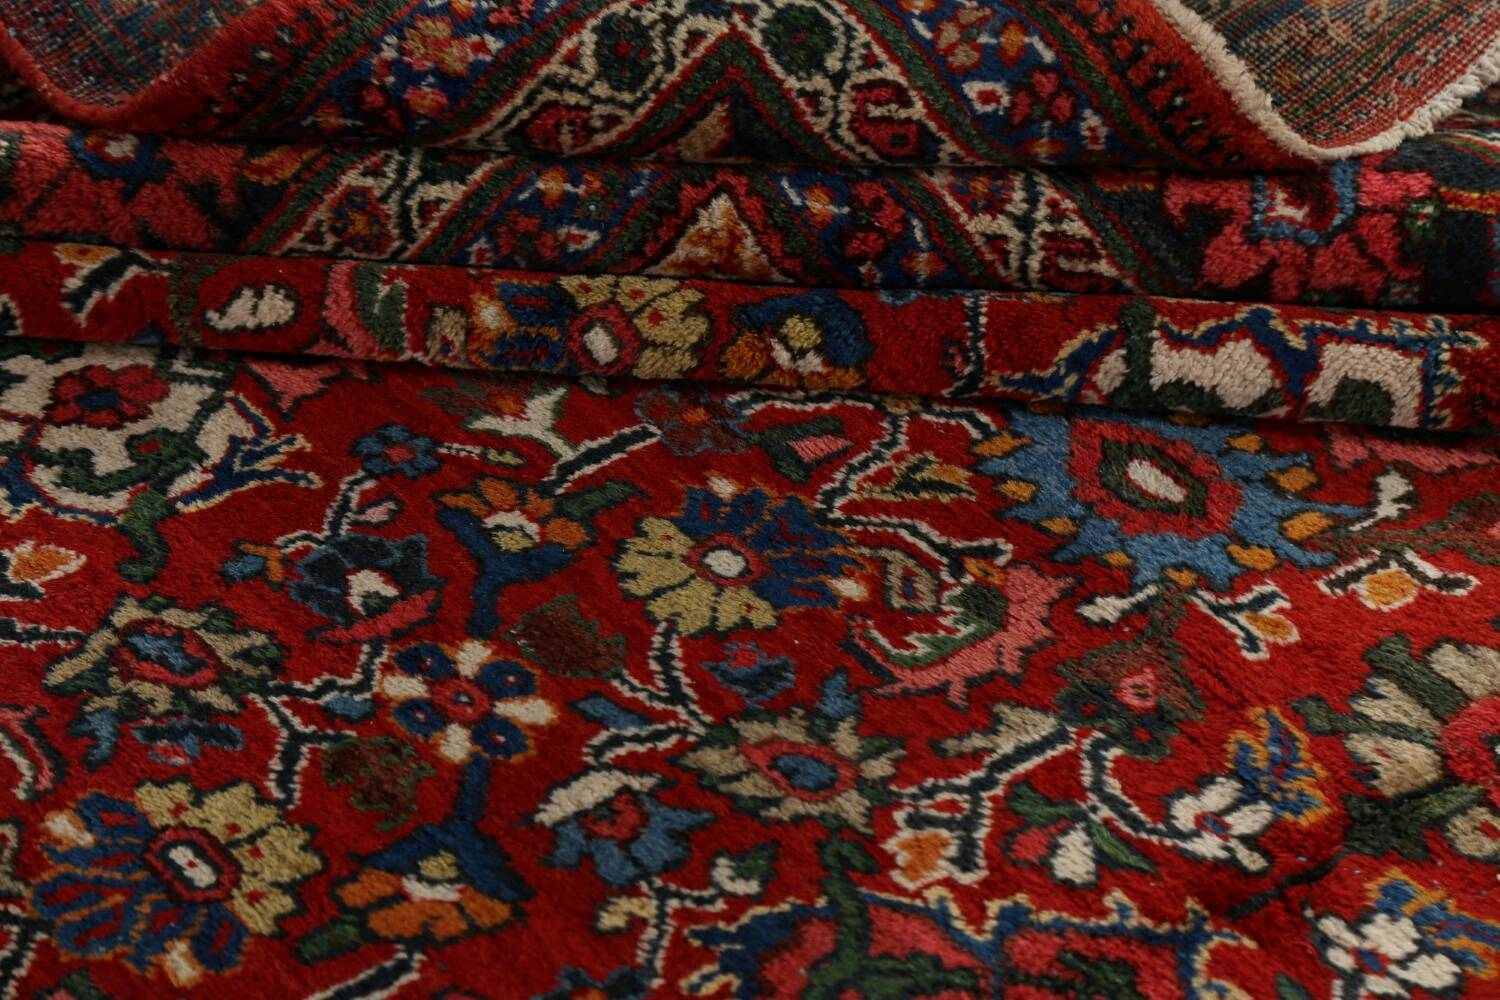 Antique 100% Vegetable Dye Sultanabad Persian Area Rug 12x17 image 19